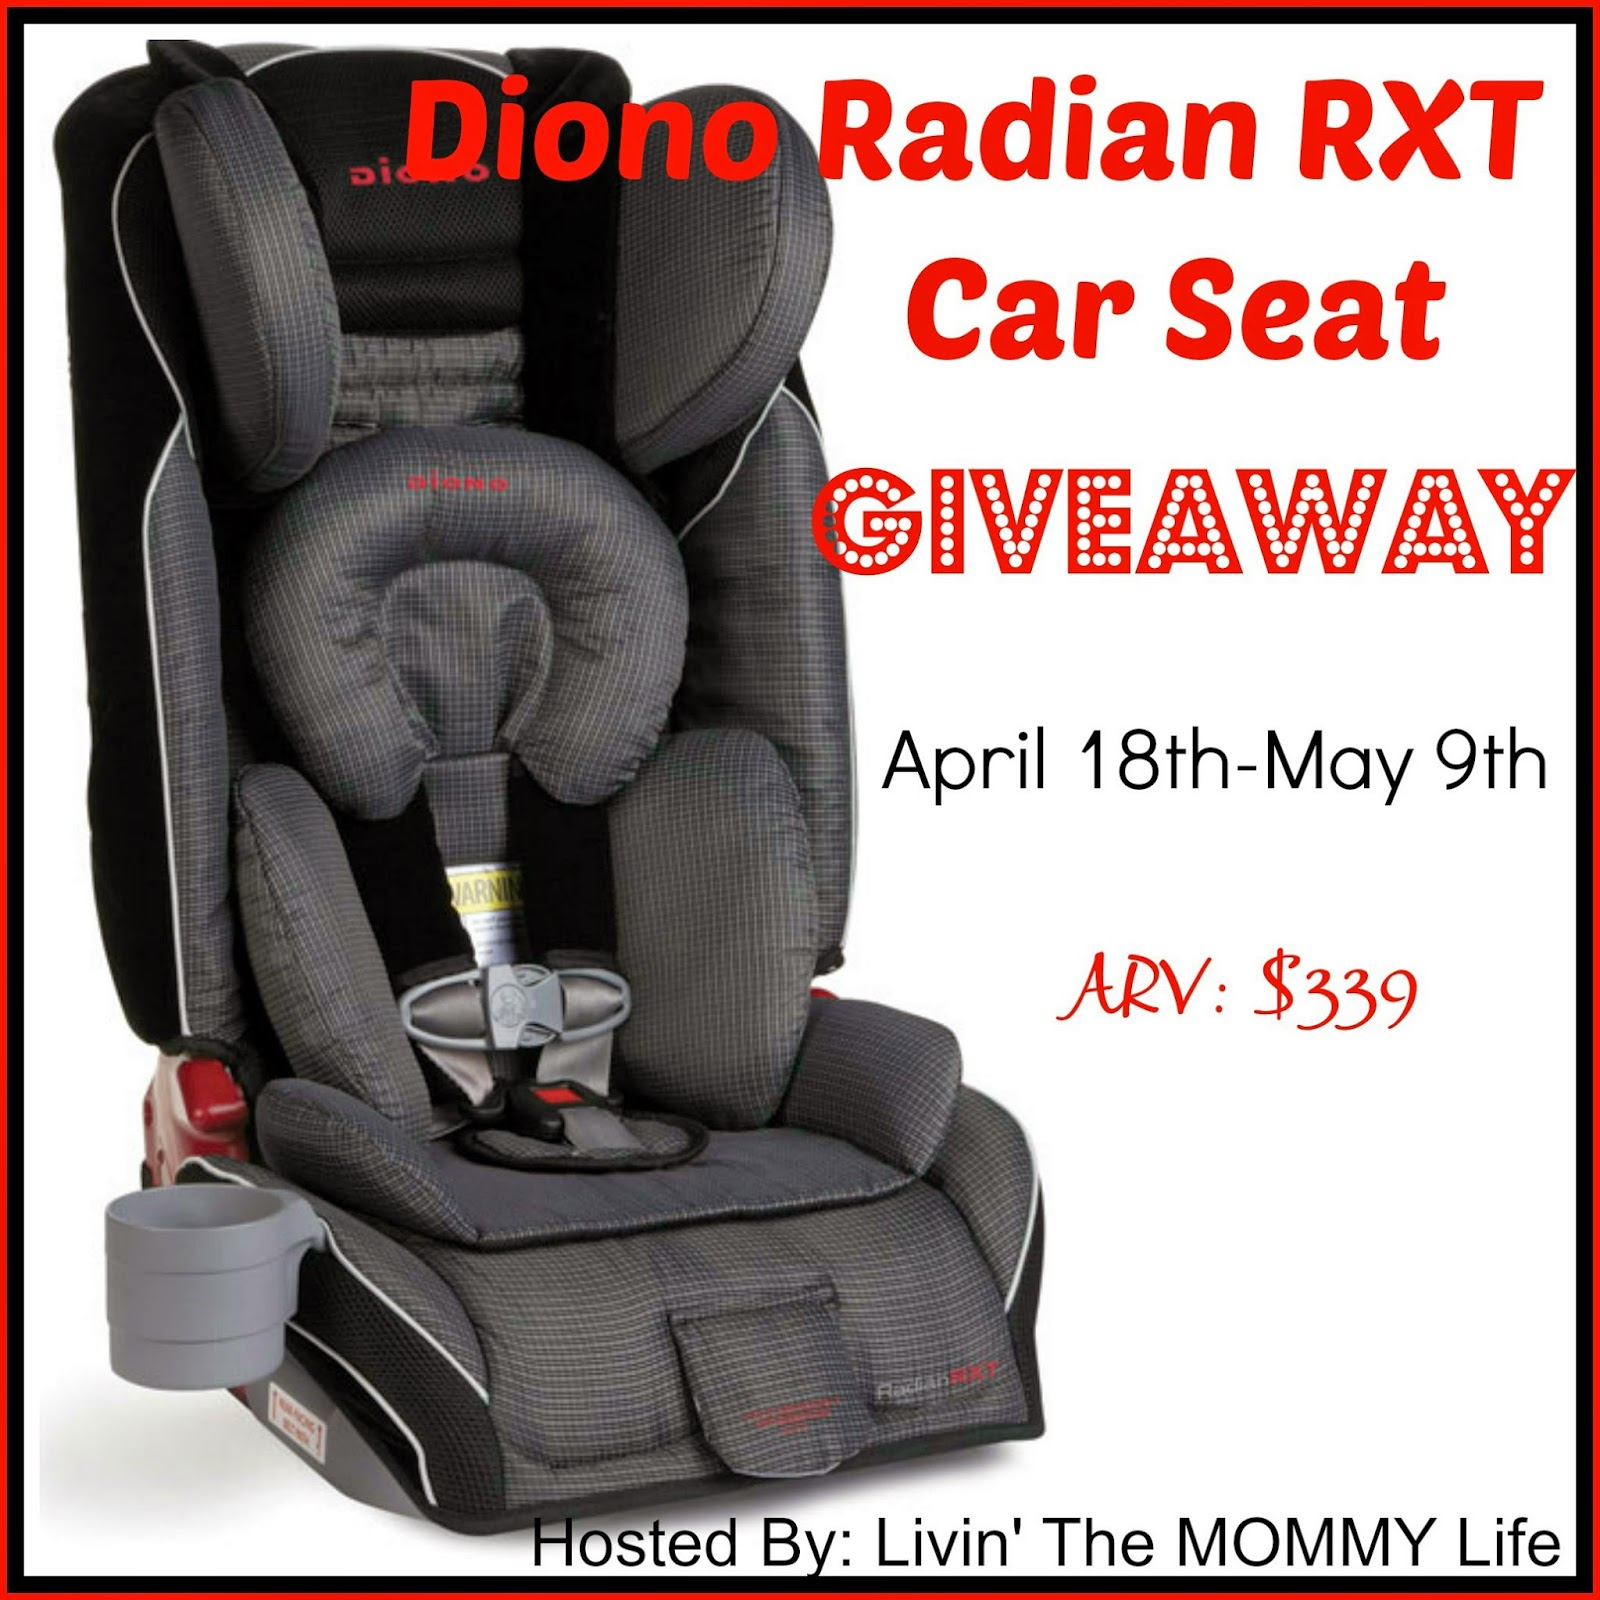 Diono Radian RXT Giveaway